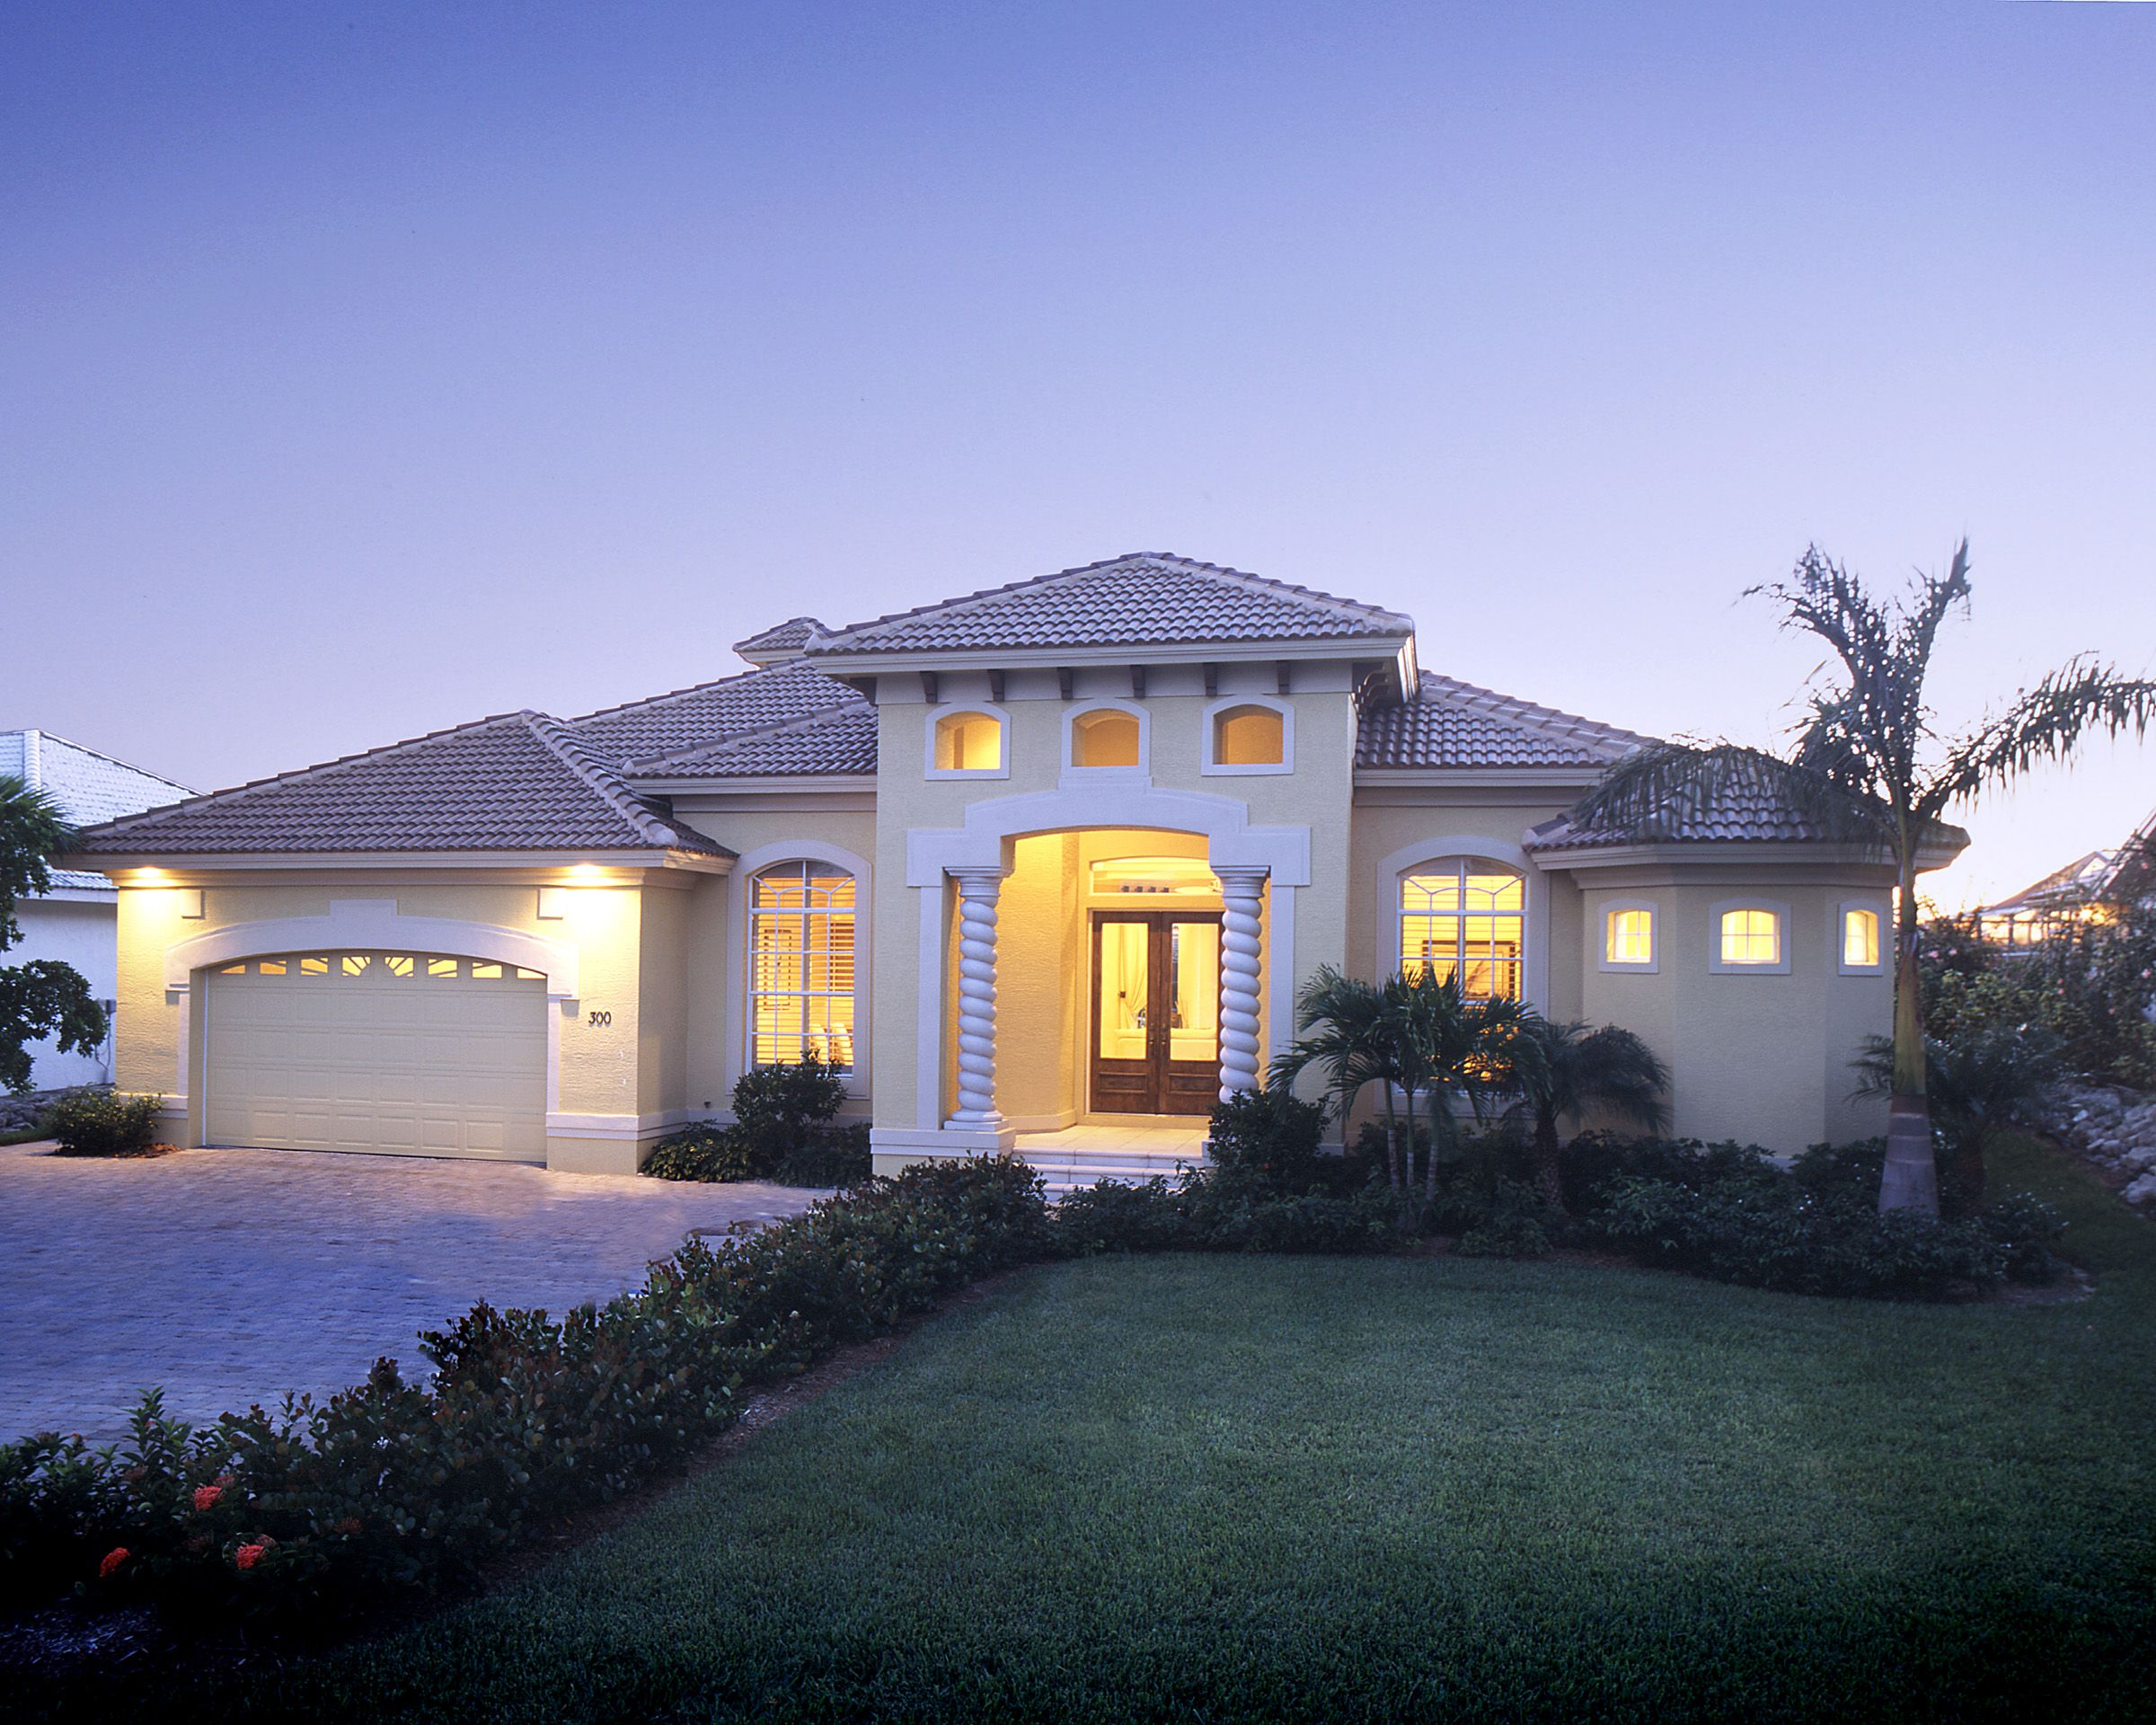 spanish style home in south florida curb appeal curb appeal spanish style home in south florida curb appeal curb appeal pinterest spanish style south florida and curb appeal